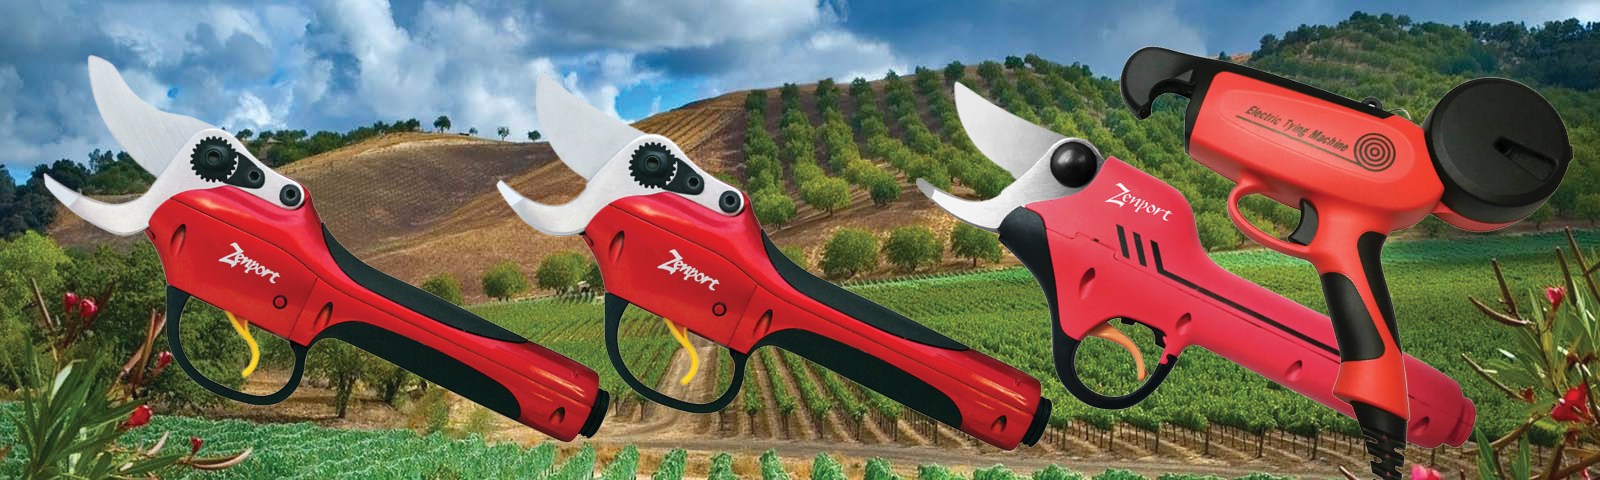 Battery Powered Pruning and Tying Tools